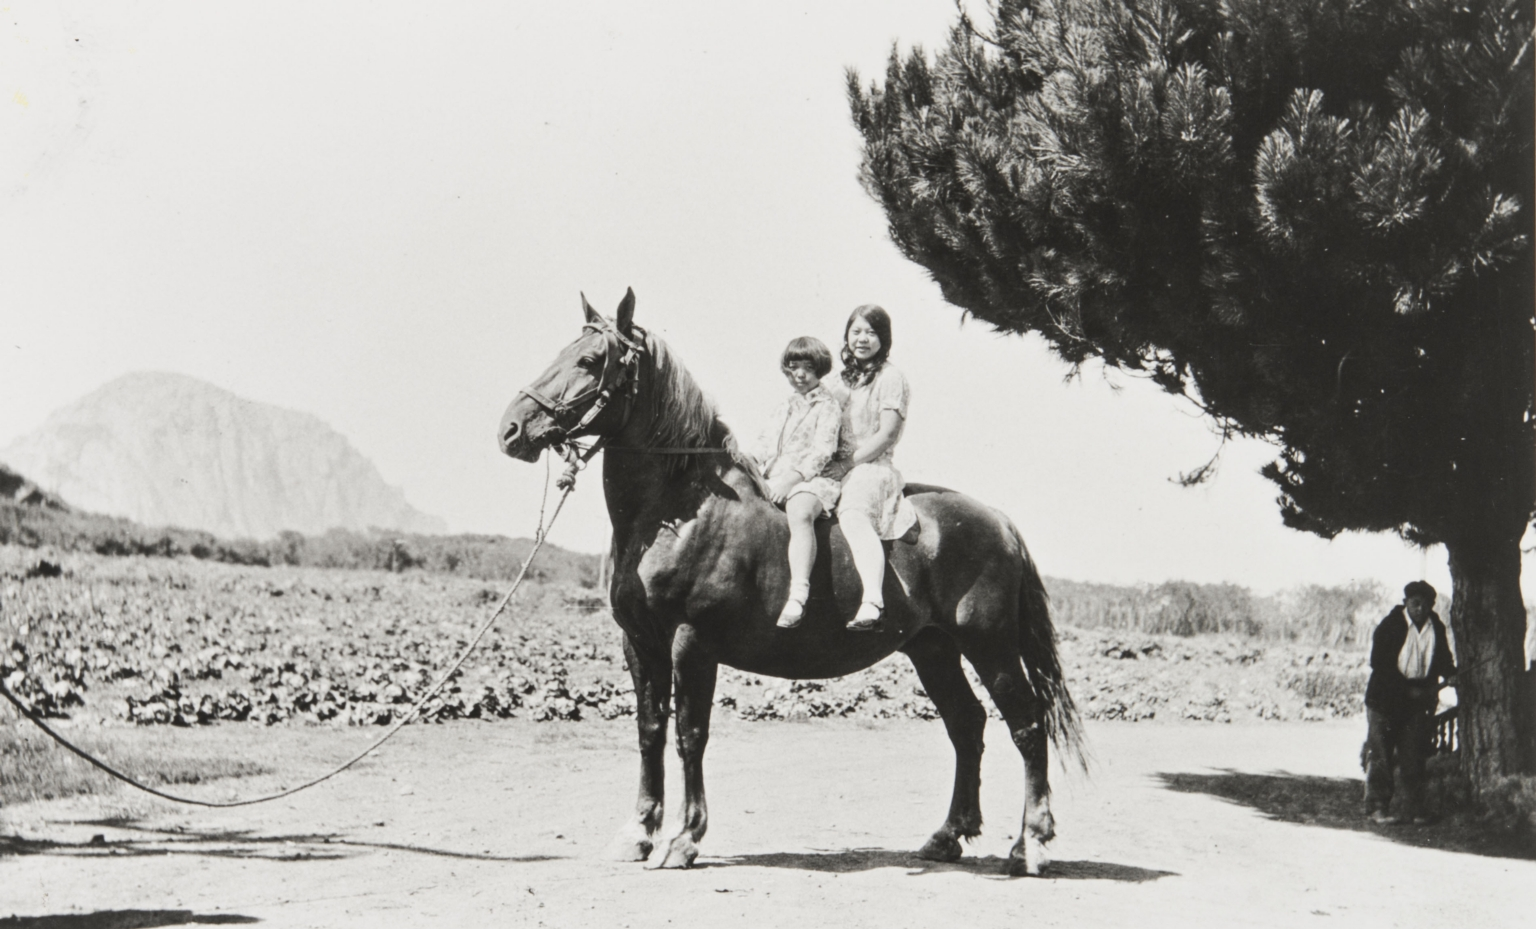 Nellie Nagano and Doris Aiso at Nagano Farm. Morro Bay : about 1930. Mitsugi Aiso by tree. Morro Rock in background.